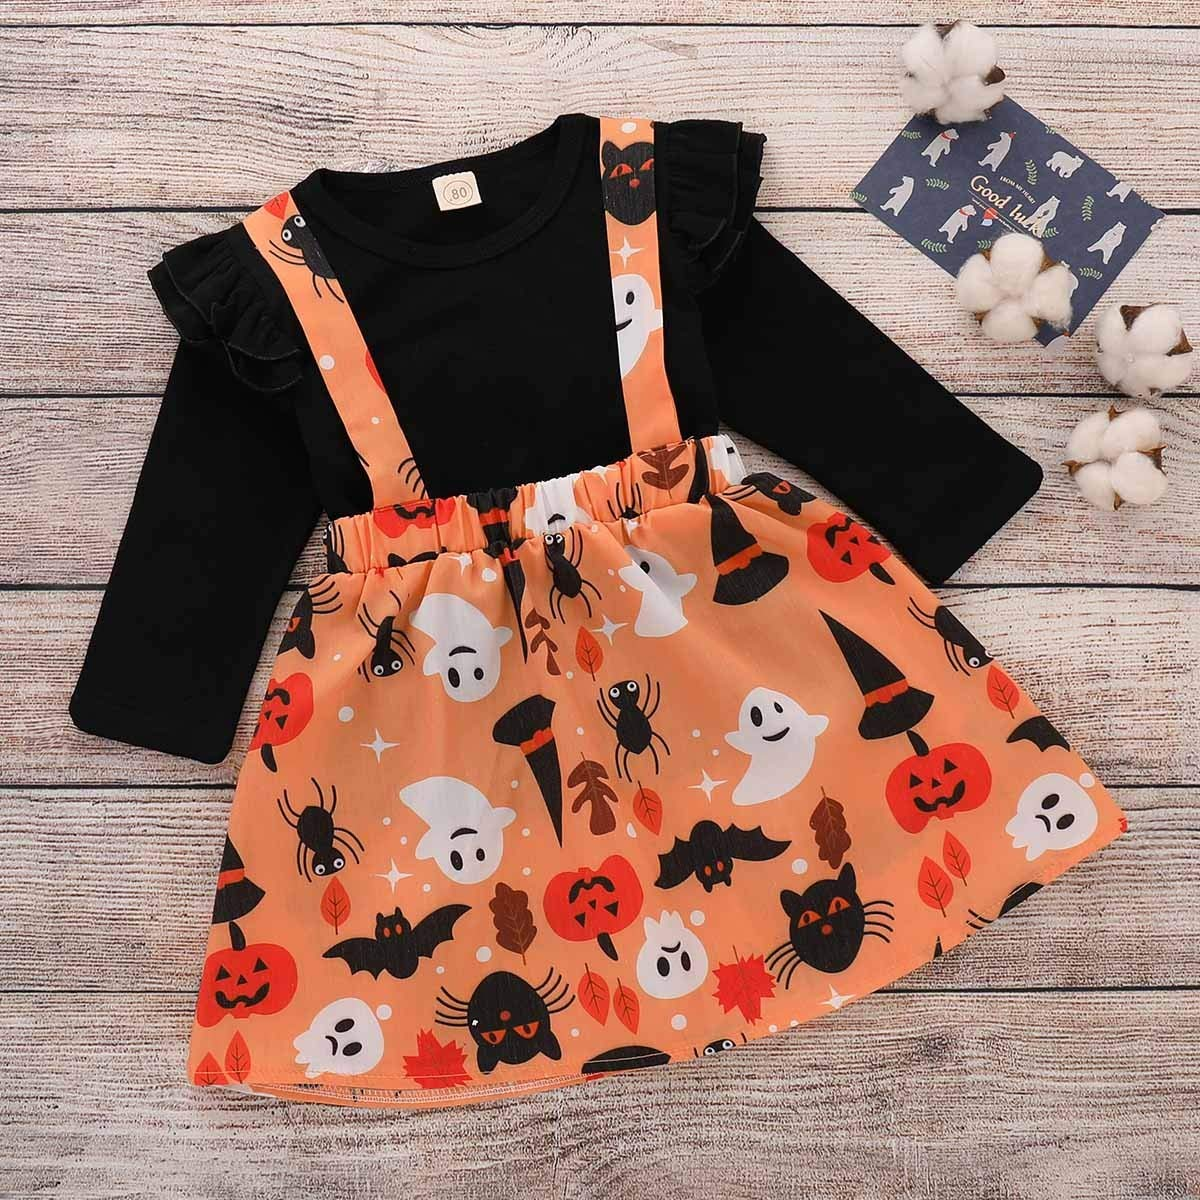 Long Sleeve T-Shirt Ruched Halloween Outfits Set VEKDONE Toddler Baby Girls Strap Skirt